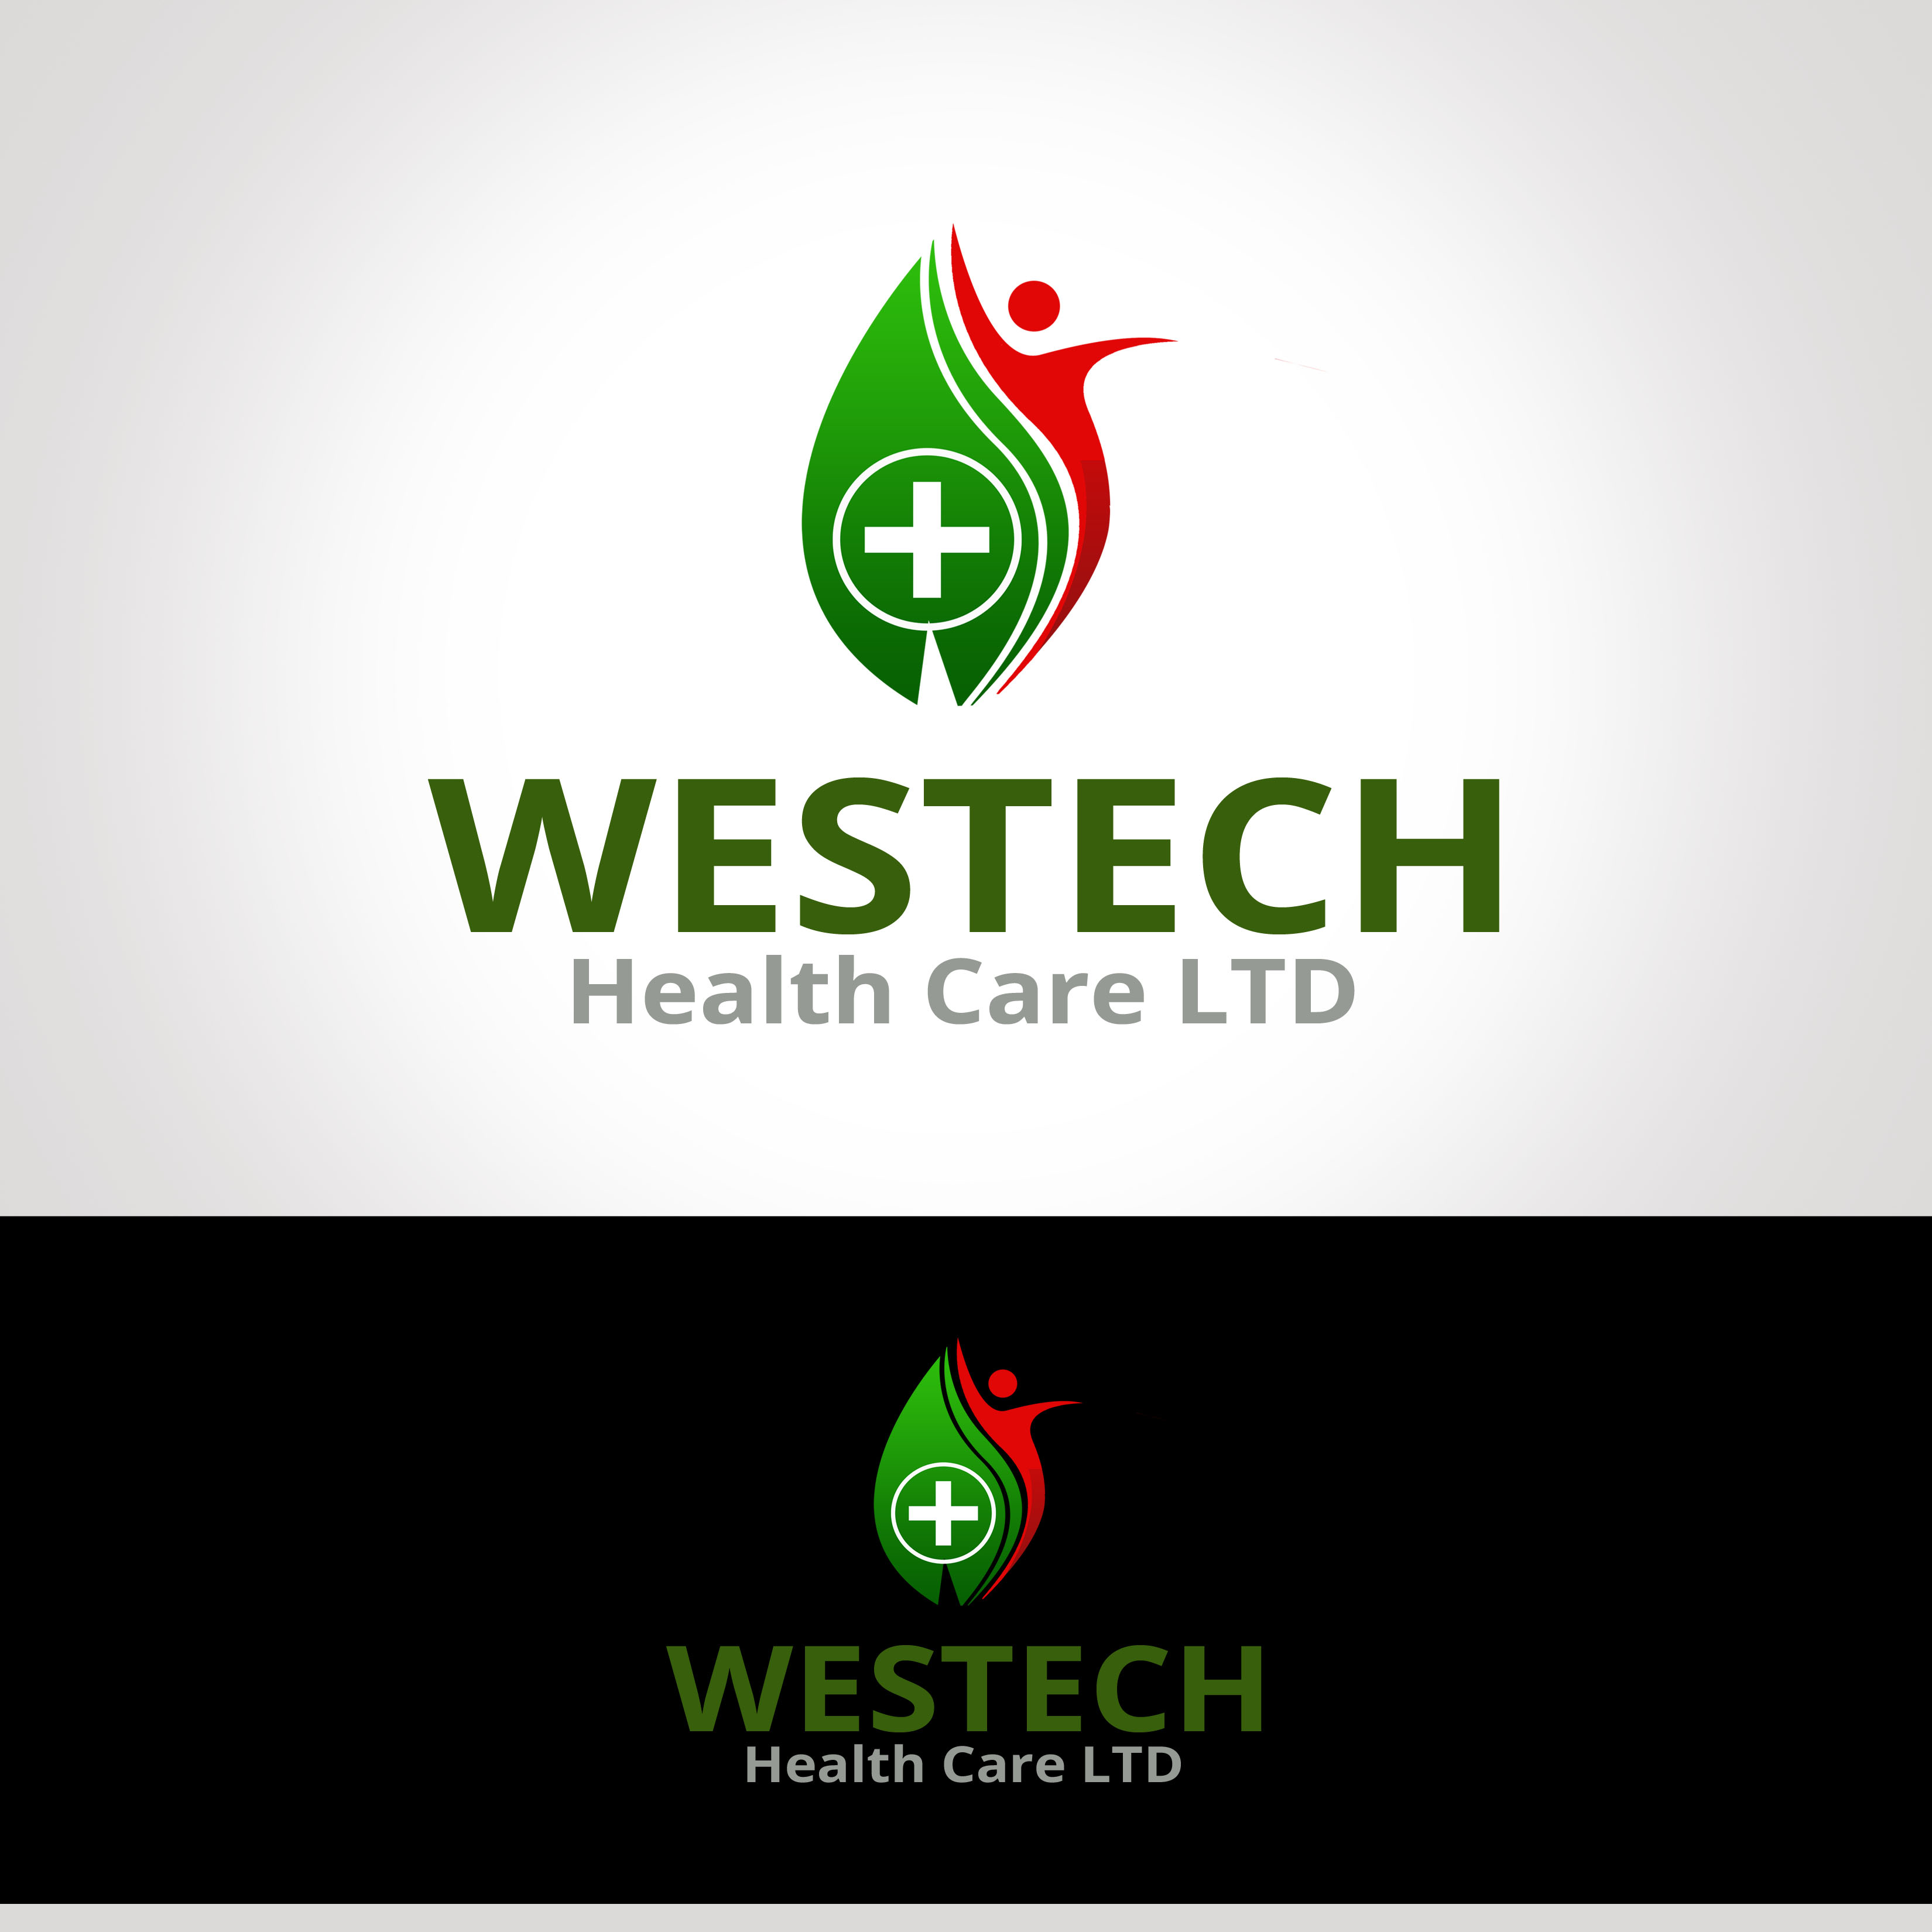 Logo Design by Allan Esclamado - Entry No. 56 in the Logo Design Contest Creative Logo Design for Westech Health Care Ltd..